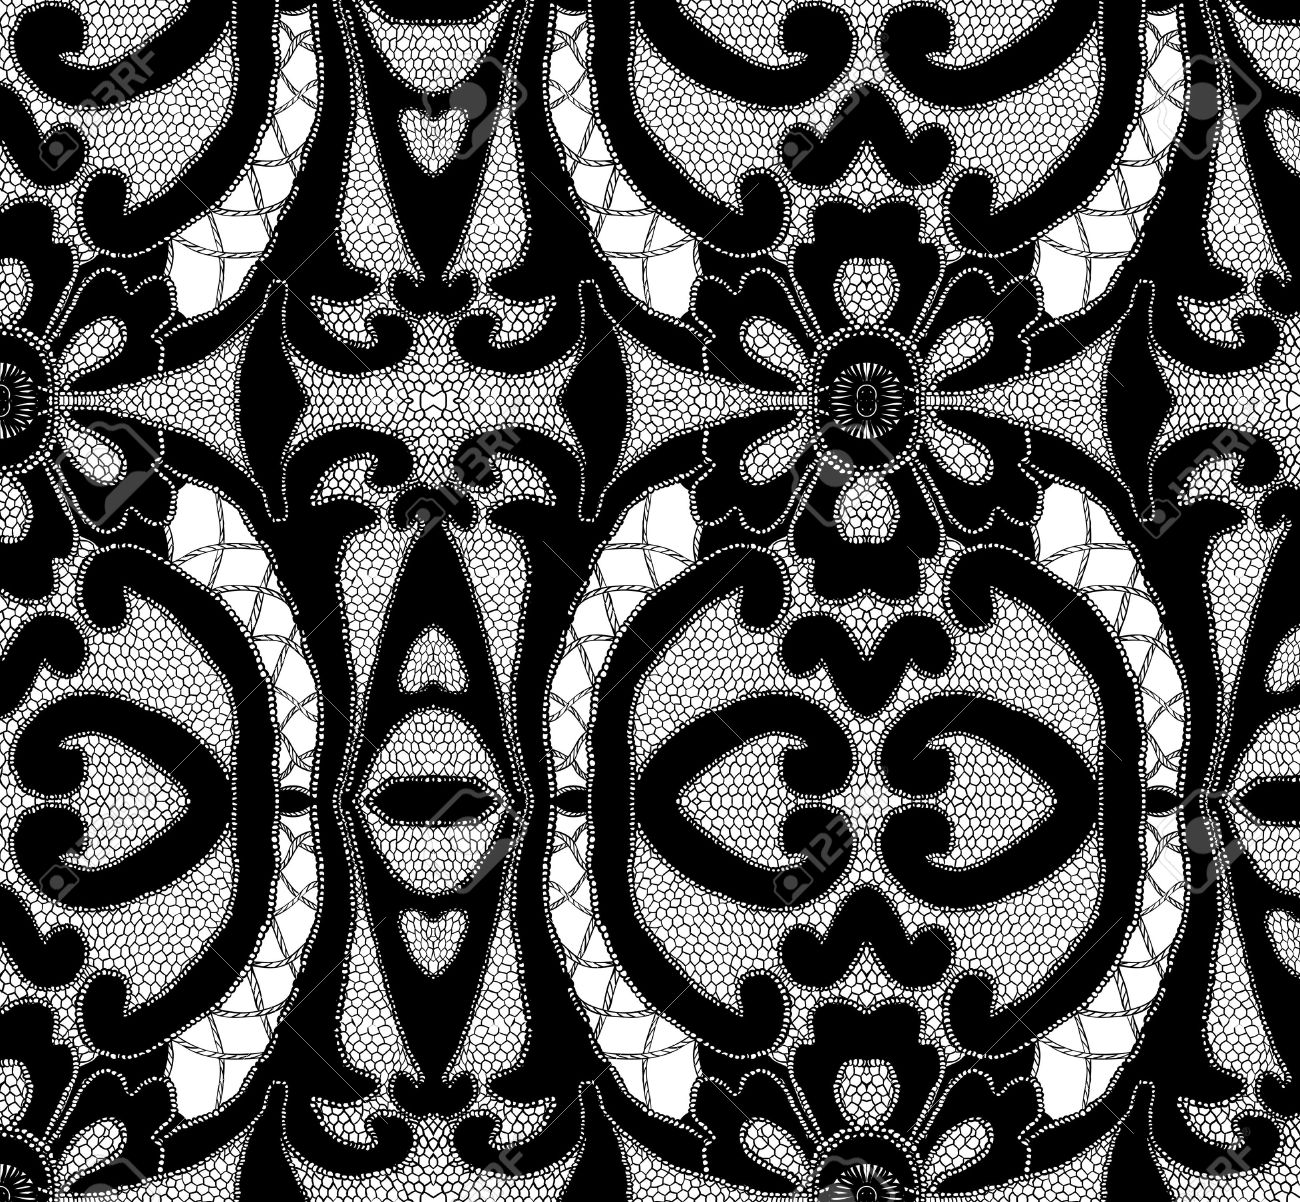 Simple lace patterns clipart vector library Simple Lace With Lacing. Vector Illustration Royalty Free Cliparts ... vector library